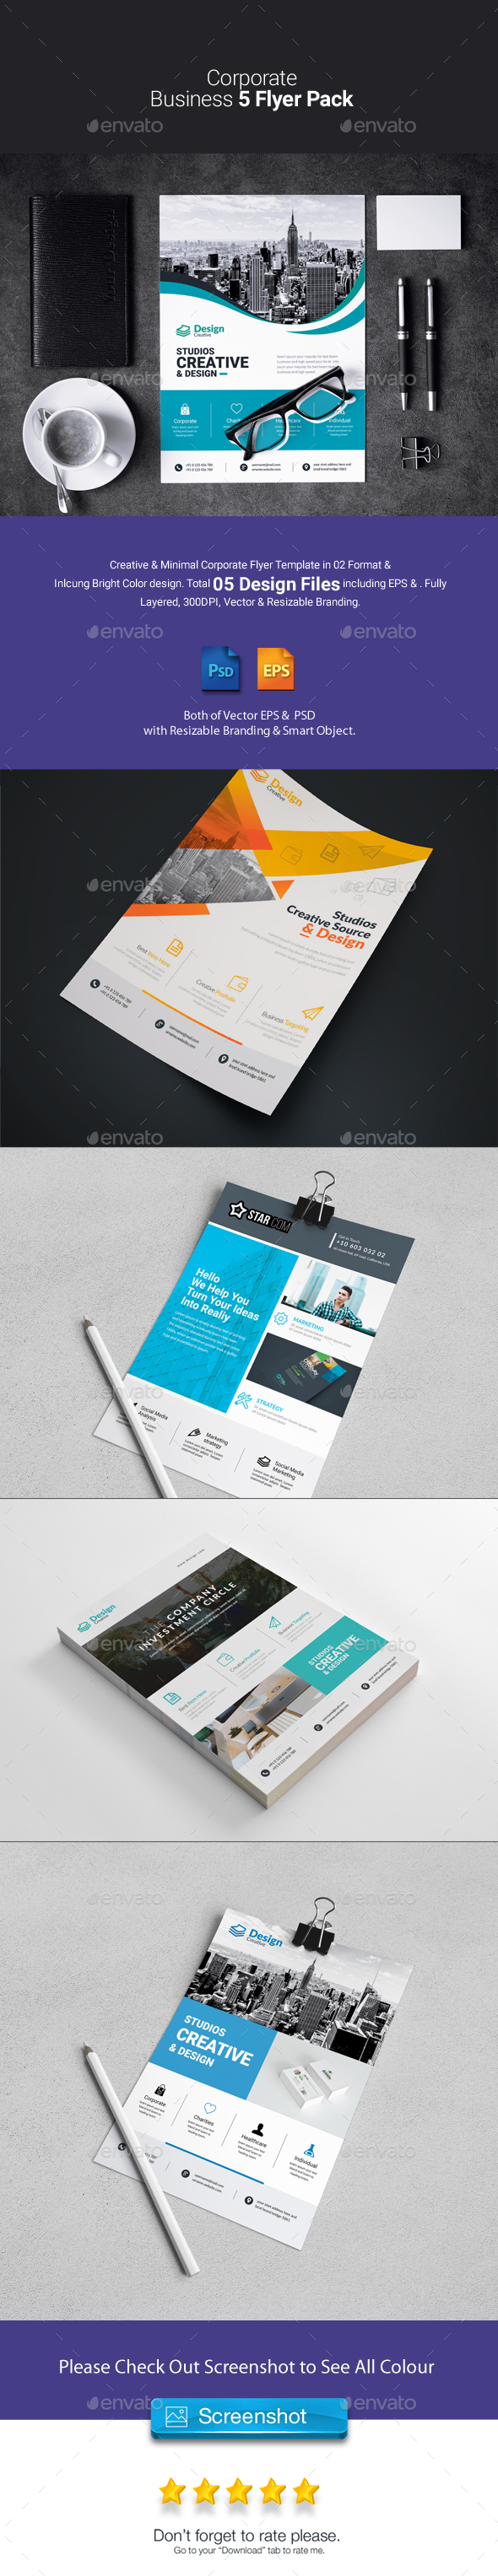 Corporate Business Flyer Pack - Corporate Flyers